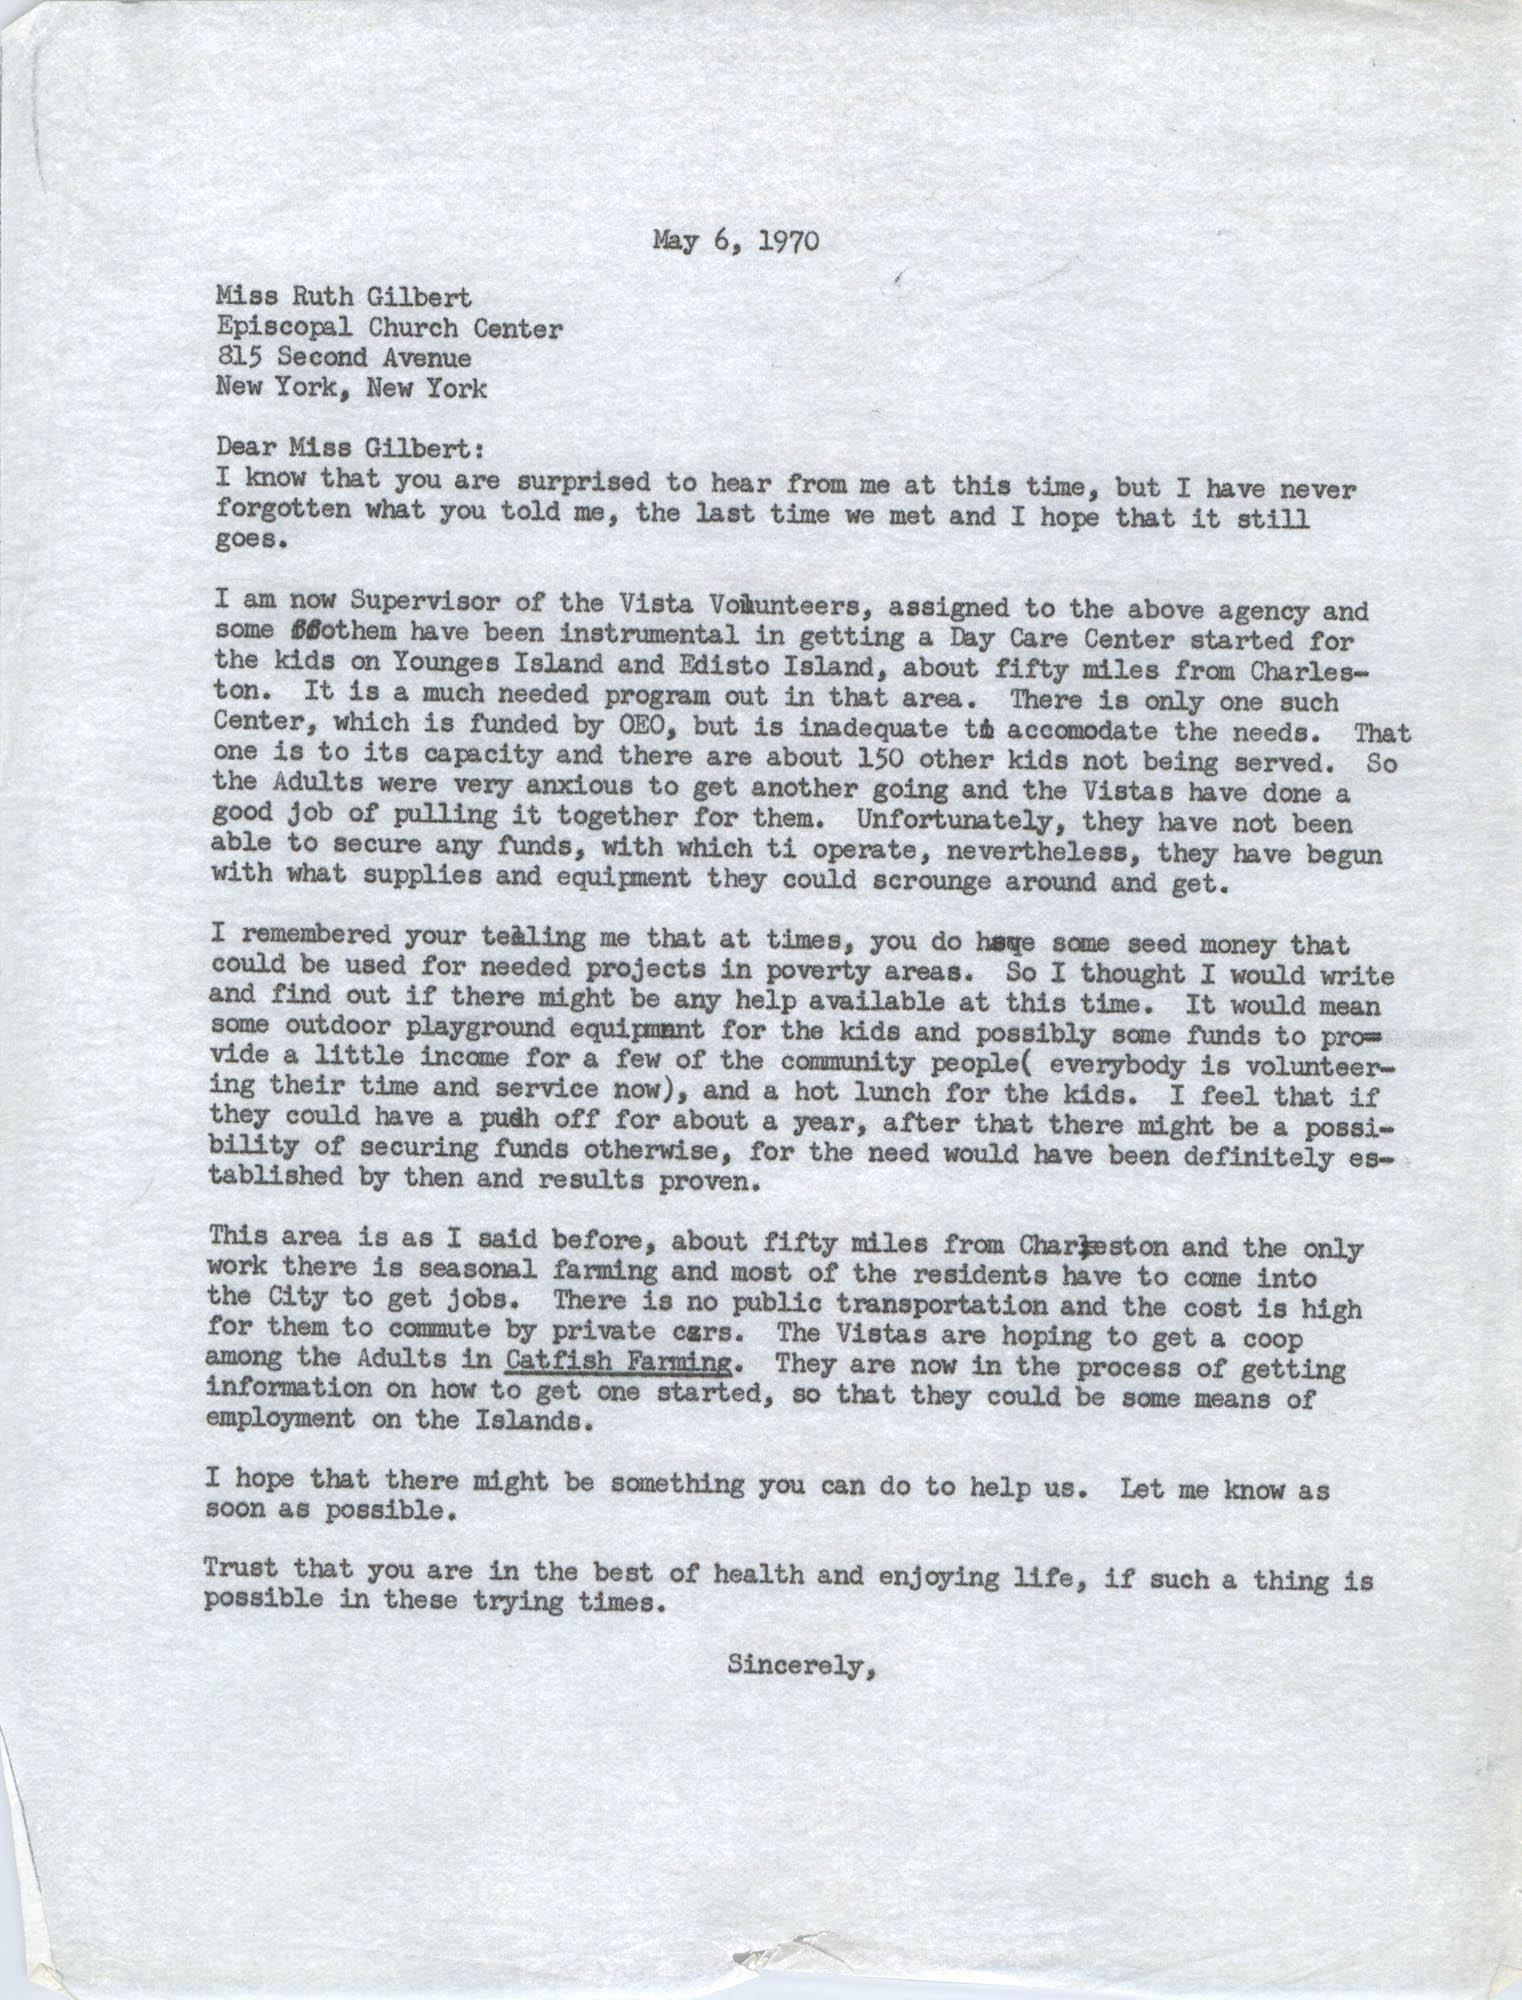 Letter from Bernice Robinson to Ruth Gilbert, May 6, 1970